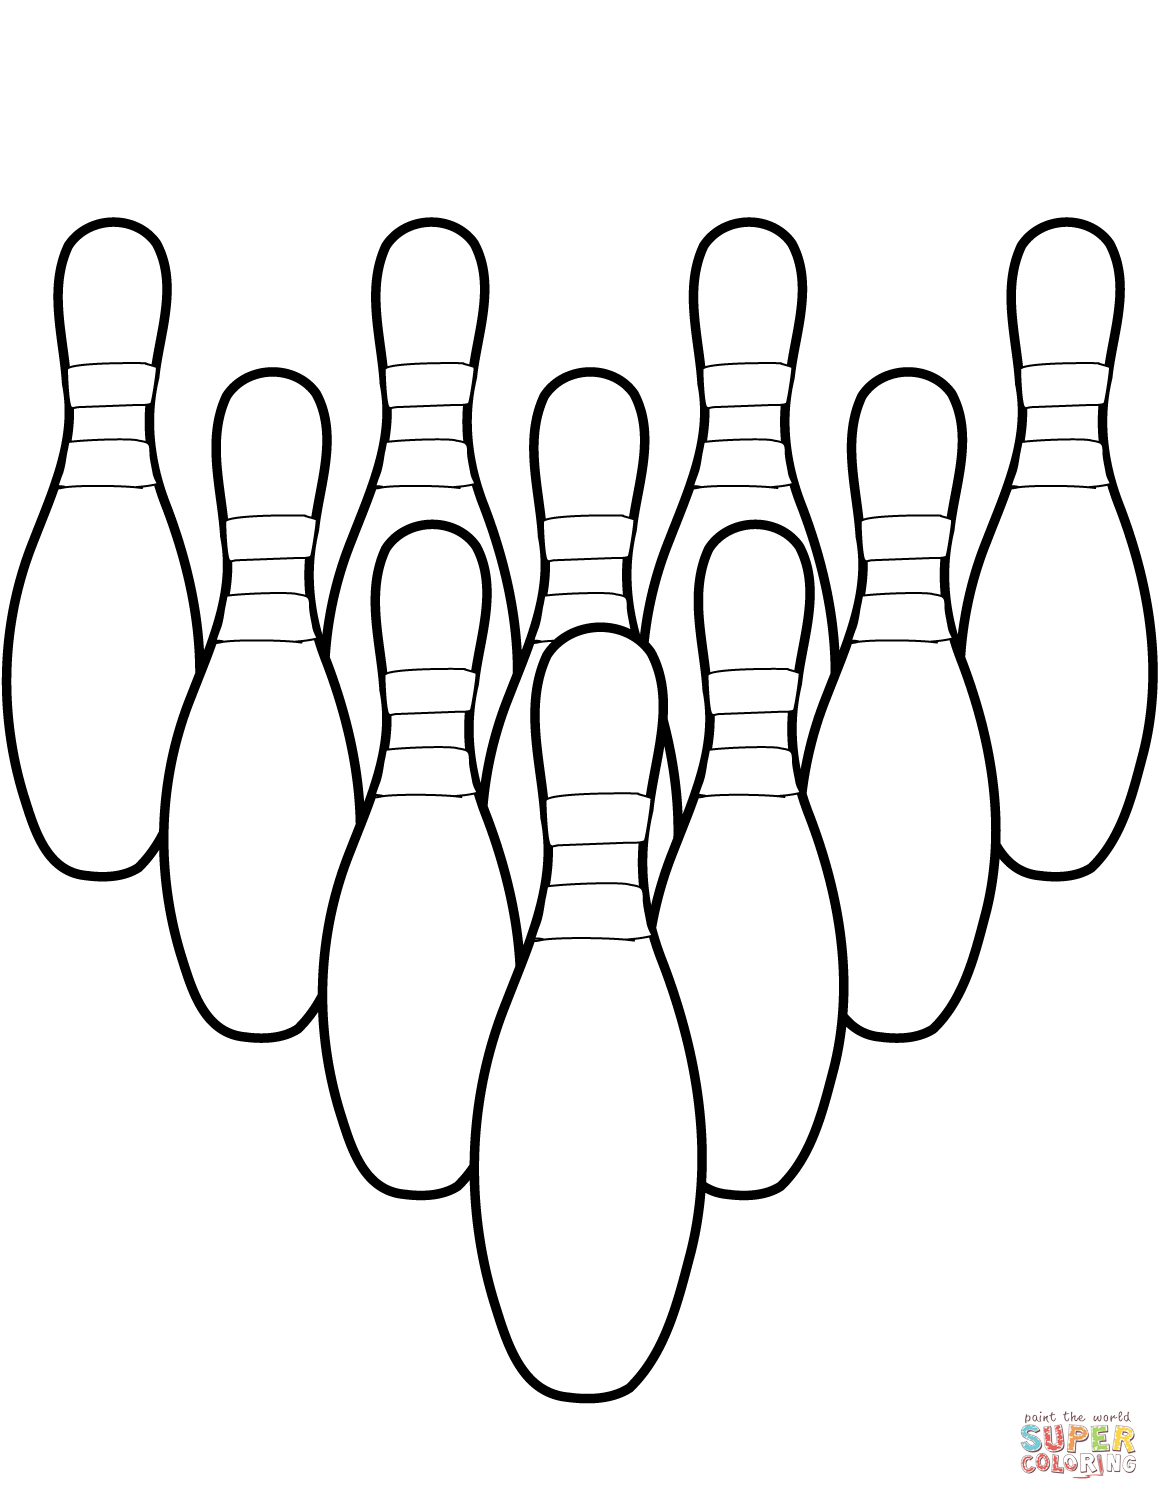 Ten Bowling Pins Coloring Page